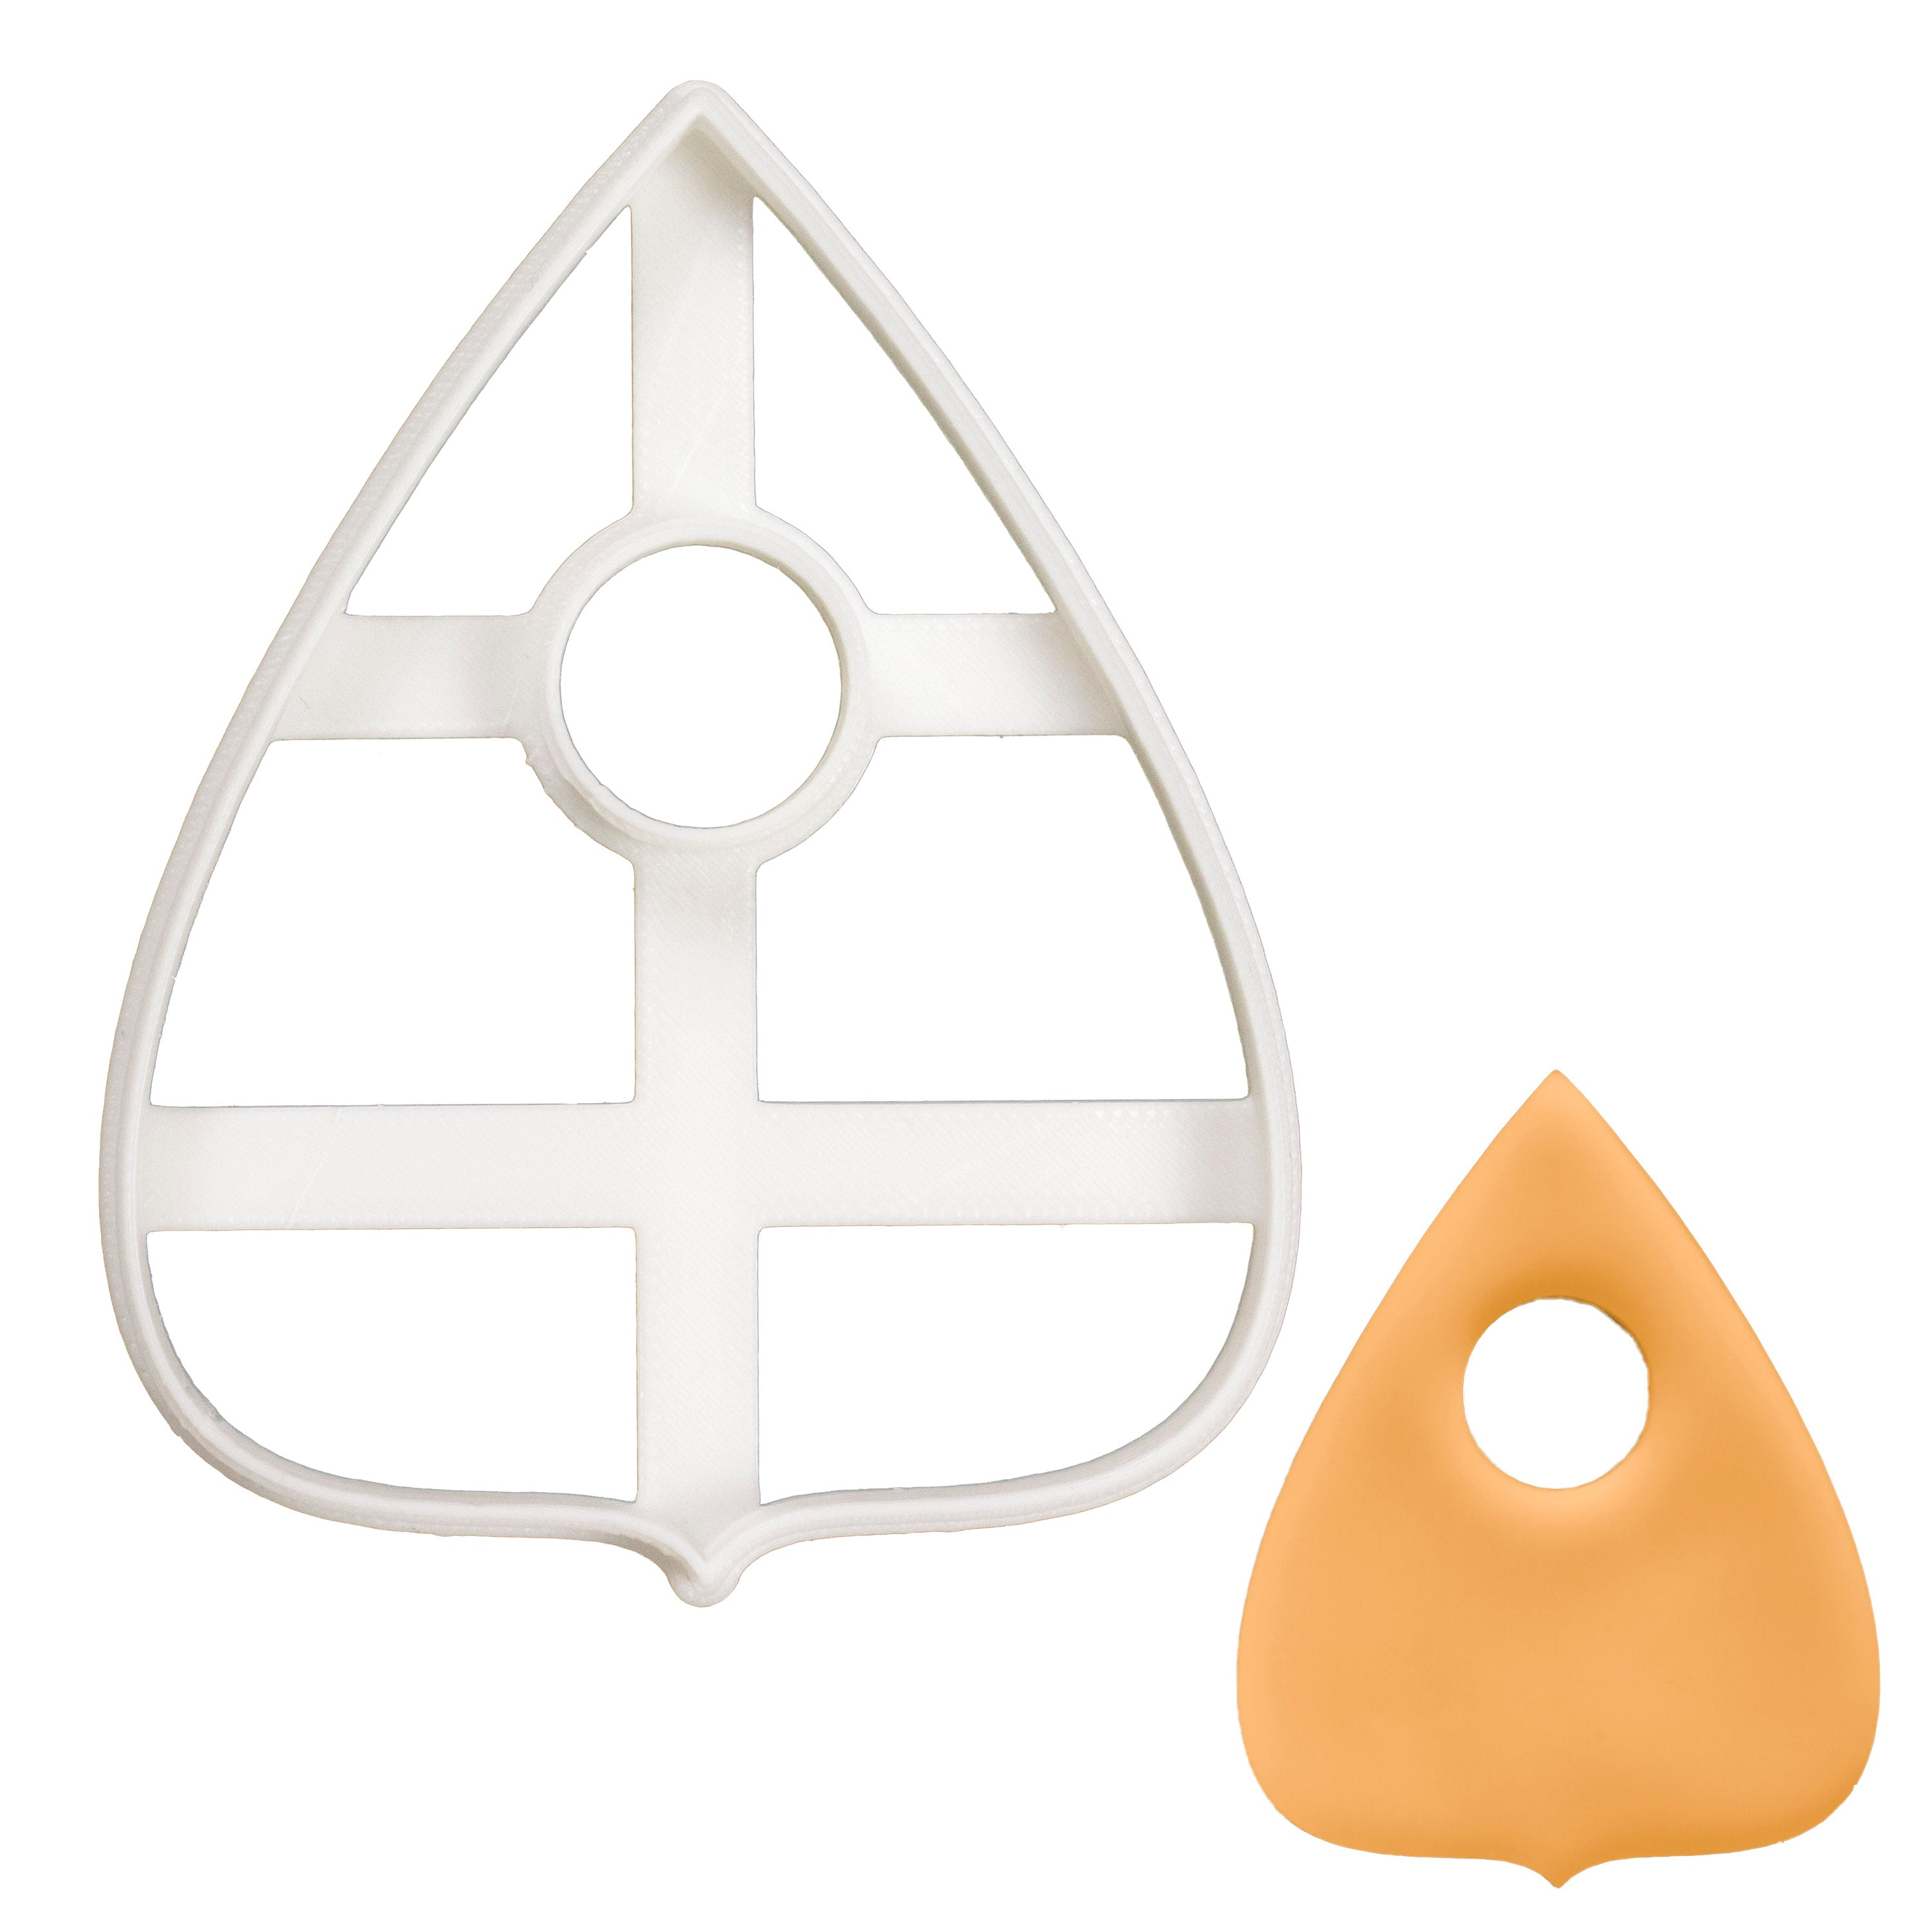 Planchette Plain cookie cutter